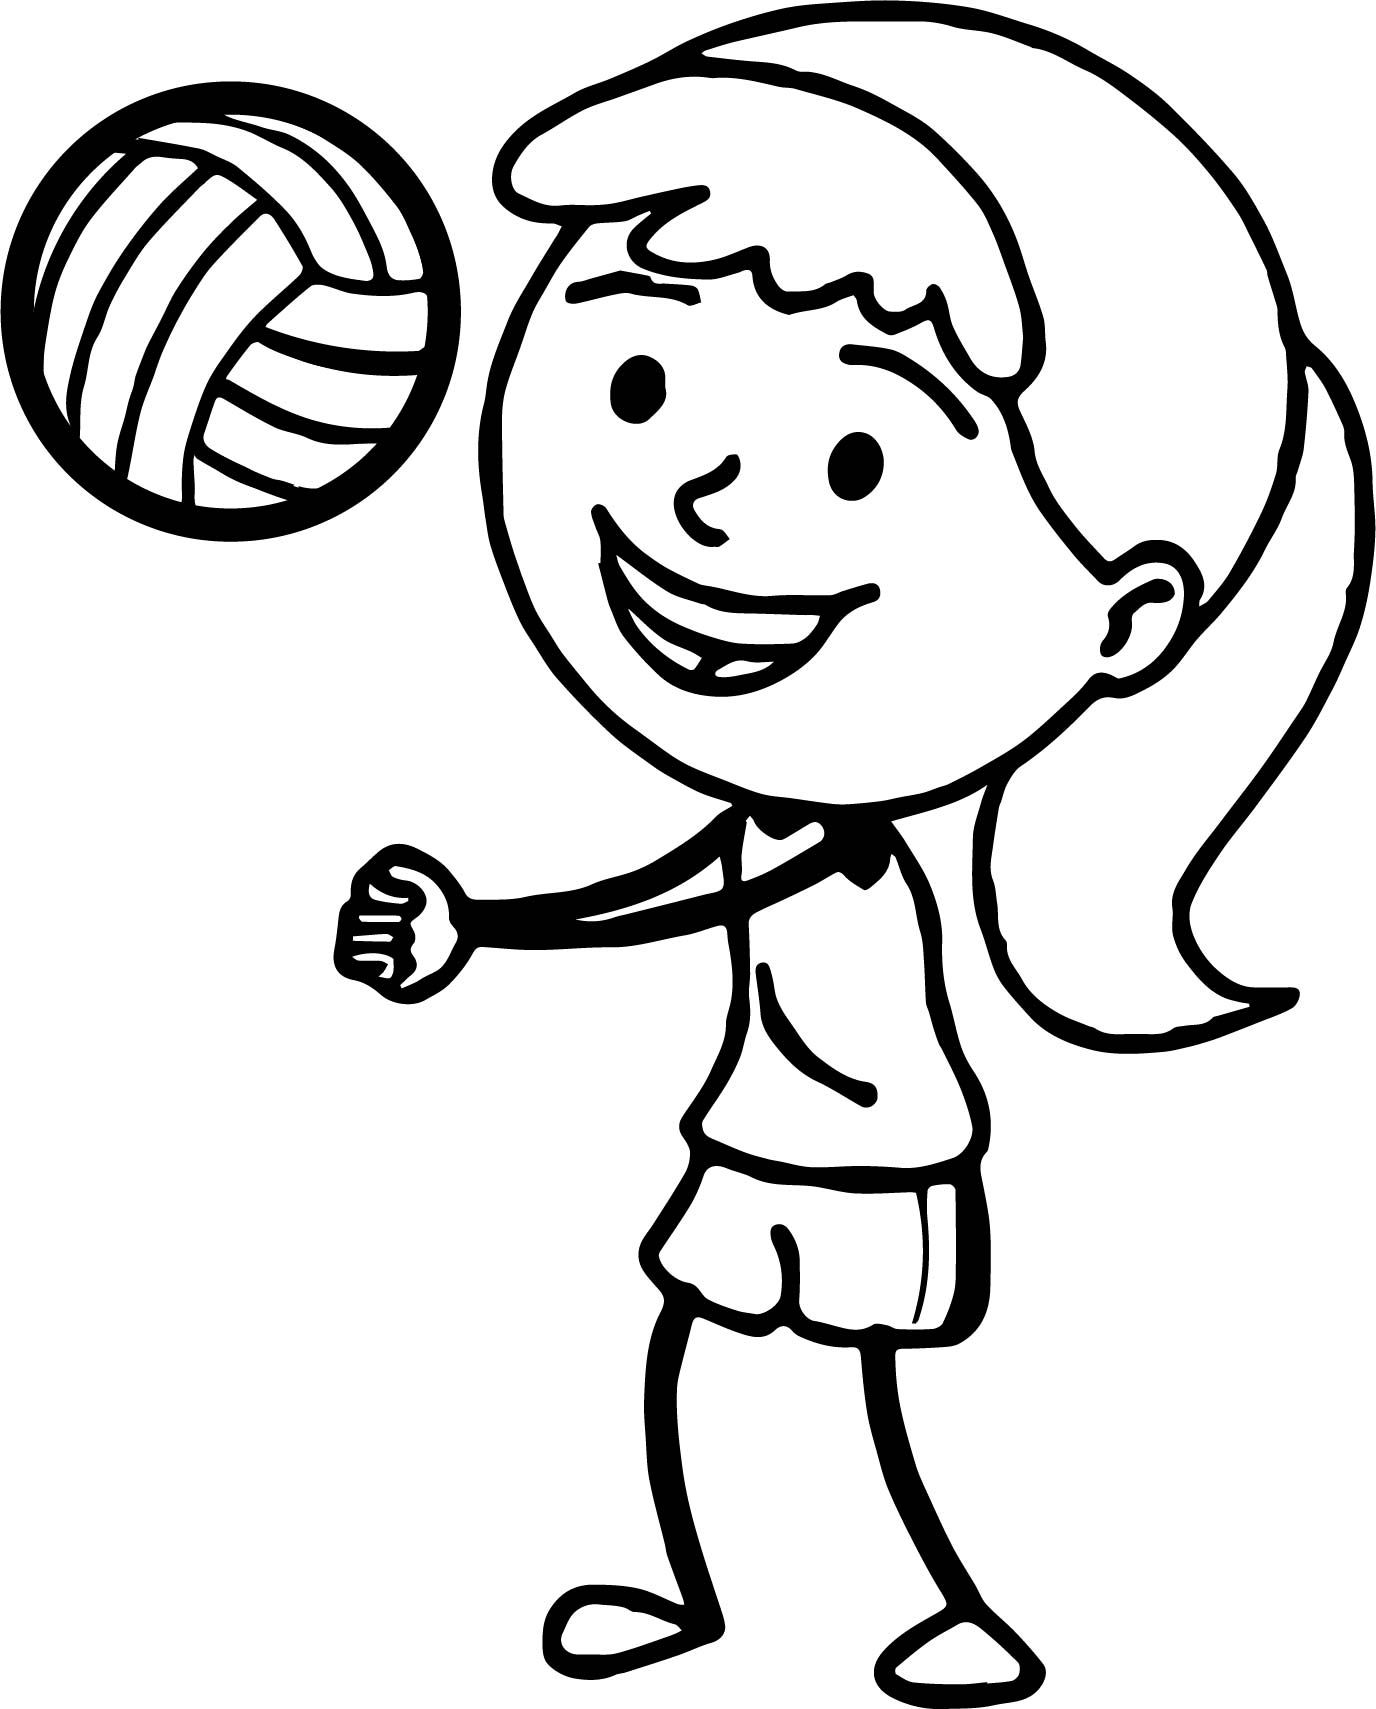 Nice Girl Playing Volleyball Bump Pass Coloring Page Coloring Pages Coloring For Kids Coloring Pages For Boys